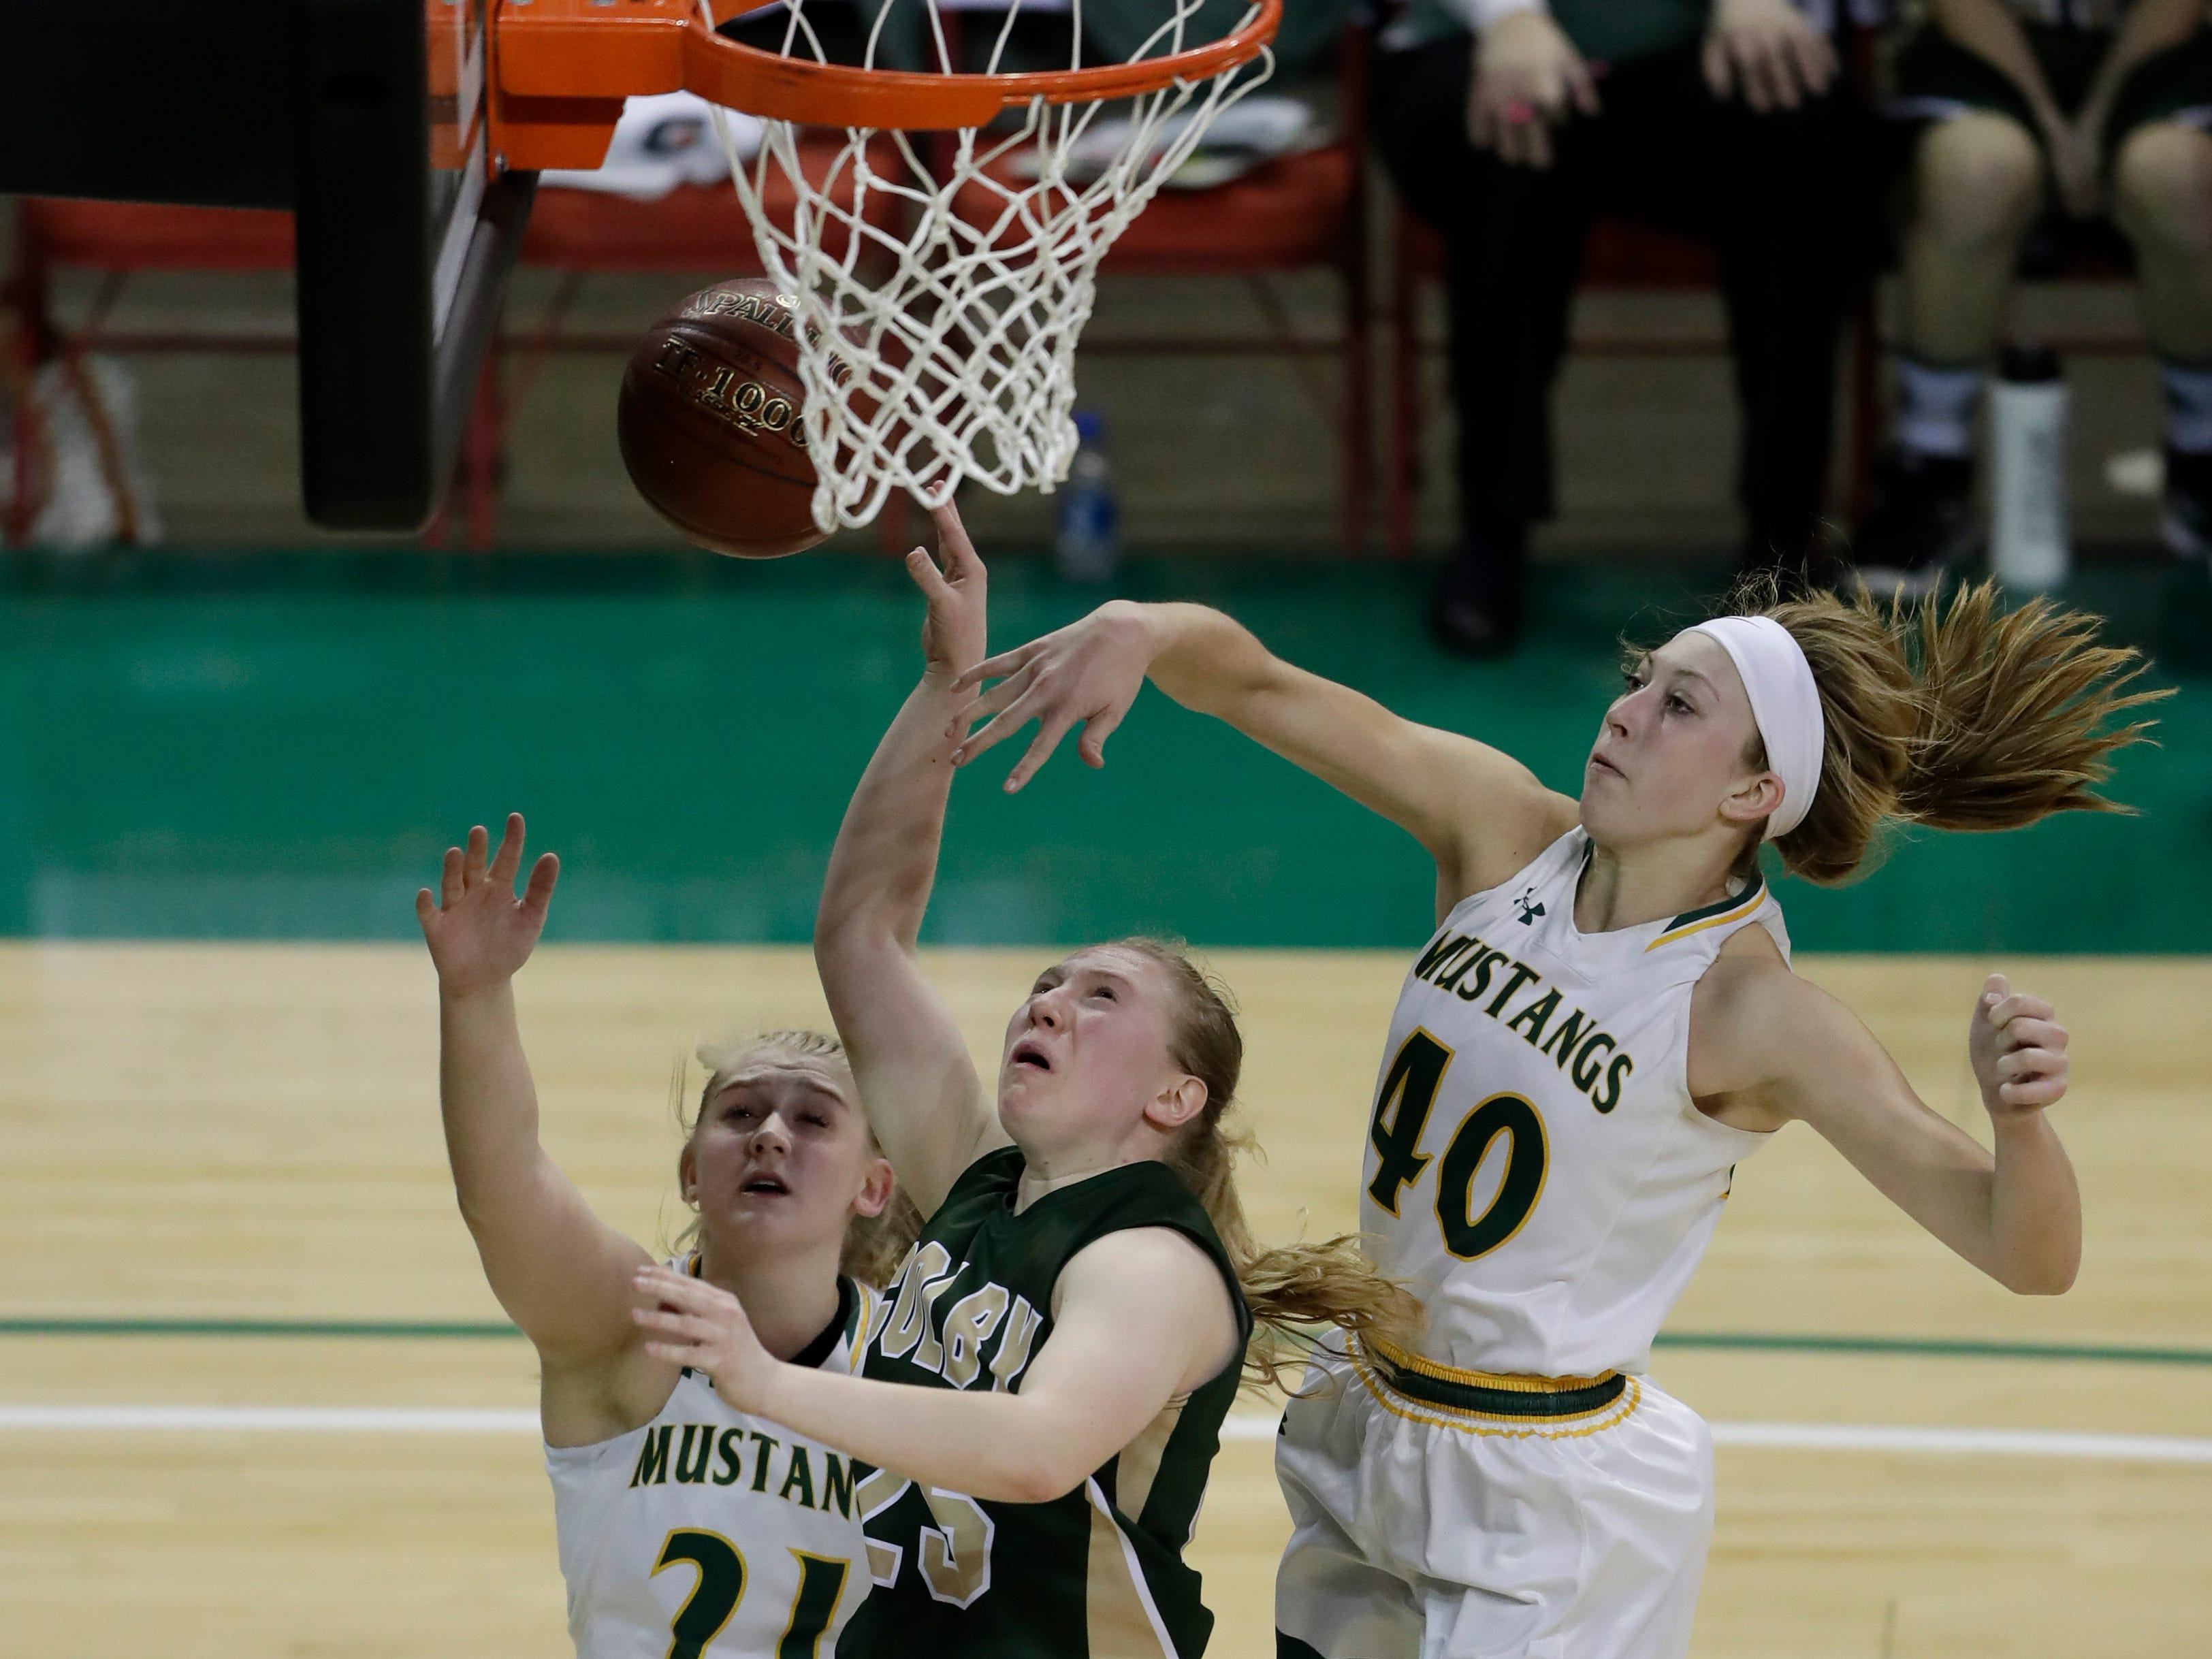 Colby's Ashley Streveler (25) is fouled by Melrose-Mindoro's Emily Herzberg (40) during their Division 4 semifinal game at the WIAA girls state basketball tournament Thursday, March 7, 2019, at the Resch Center in Ashwaubenon, Wis.